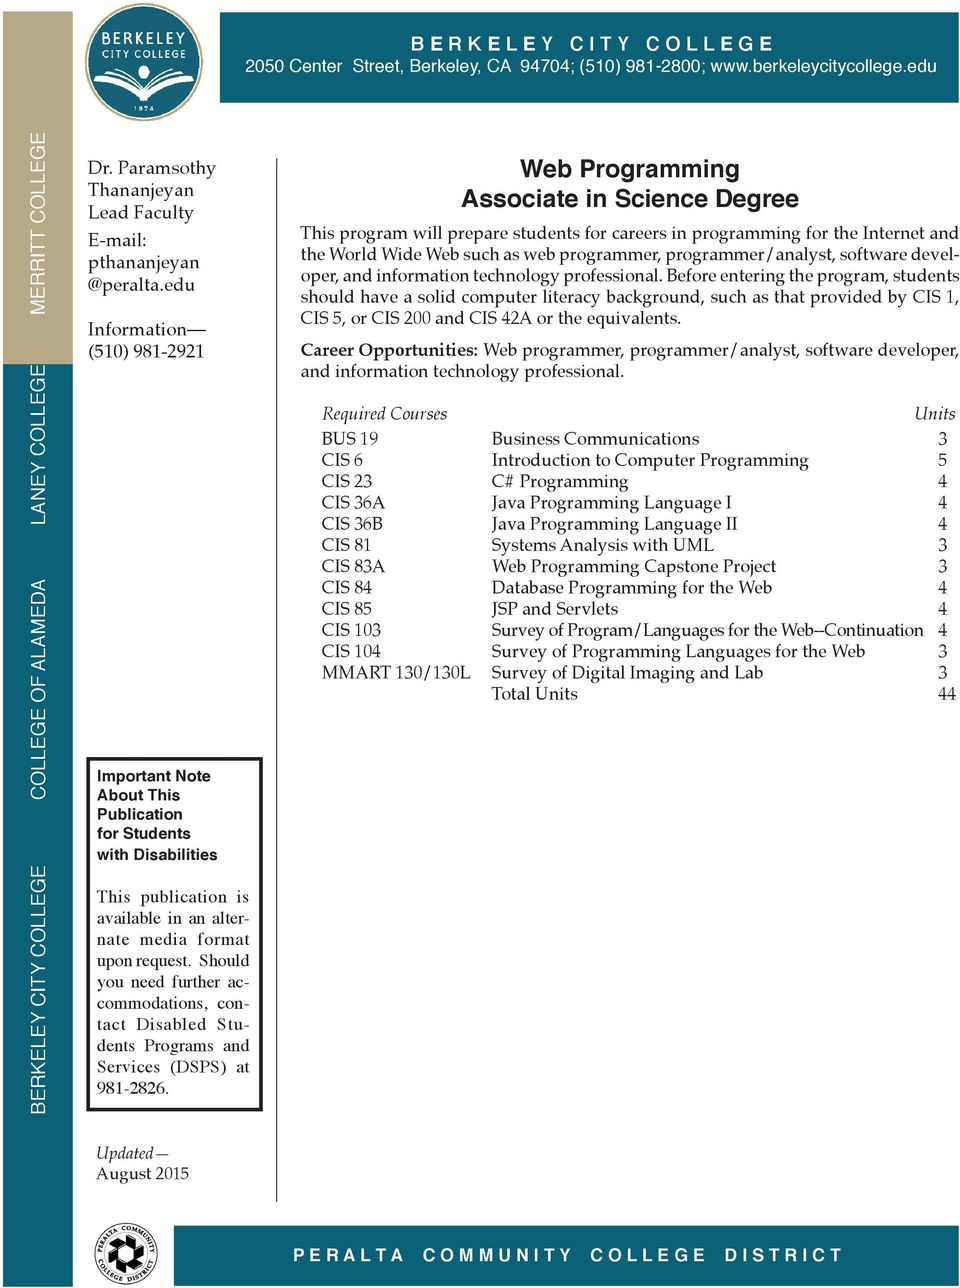 Before entering the program, students should have a solid computer literacy background, such as that provided by CIS 1, CIS 5, or CIS 200 and CIS 42A or the equivalents.